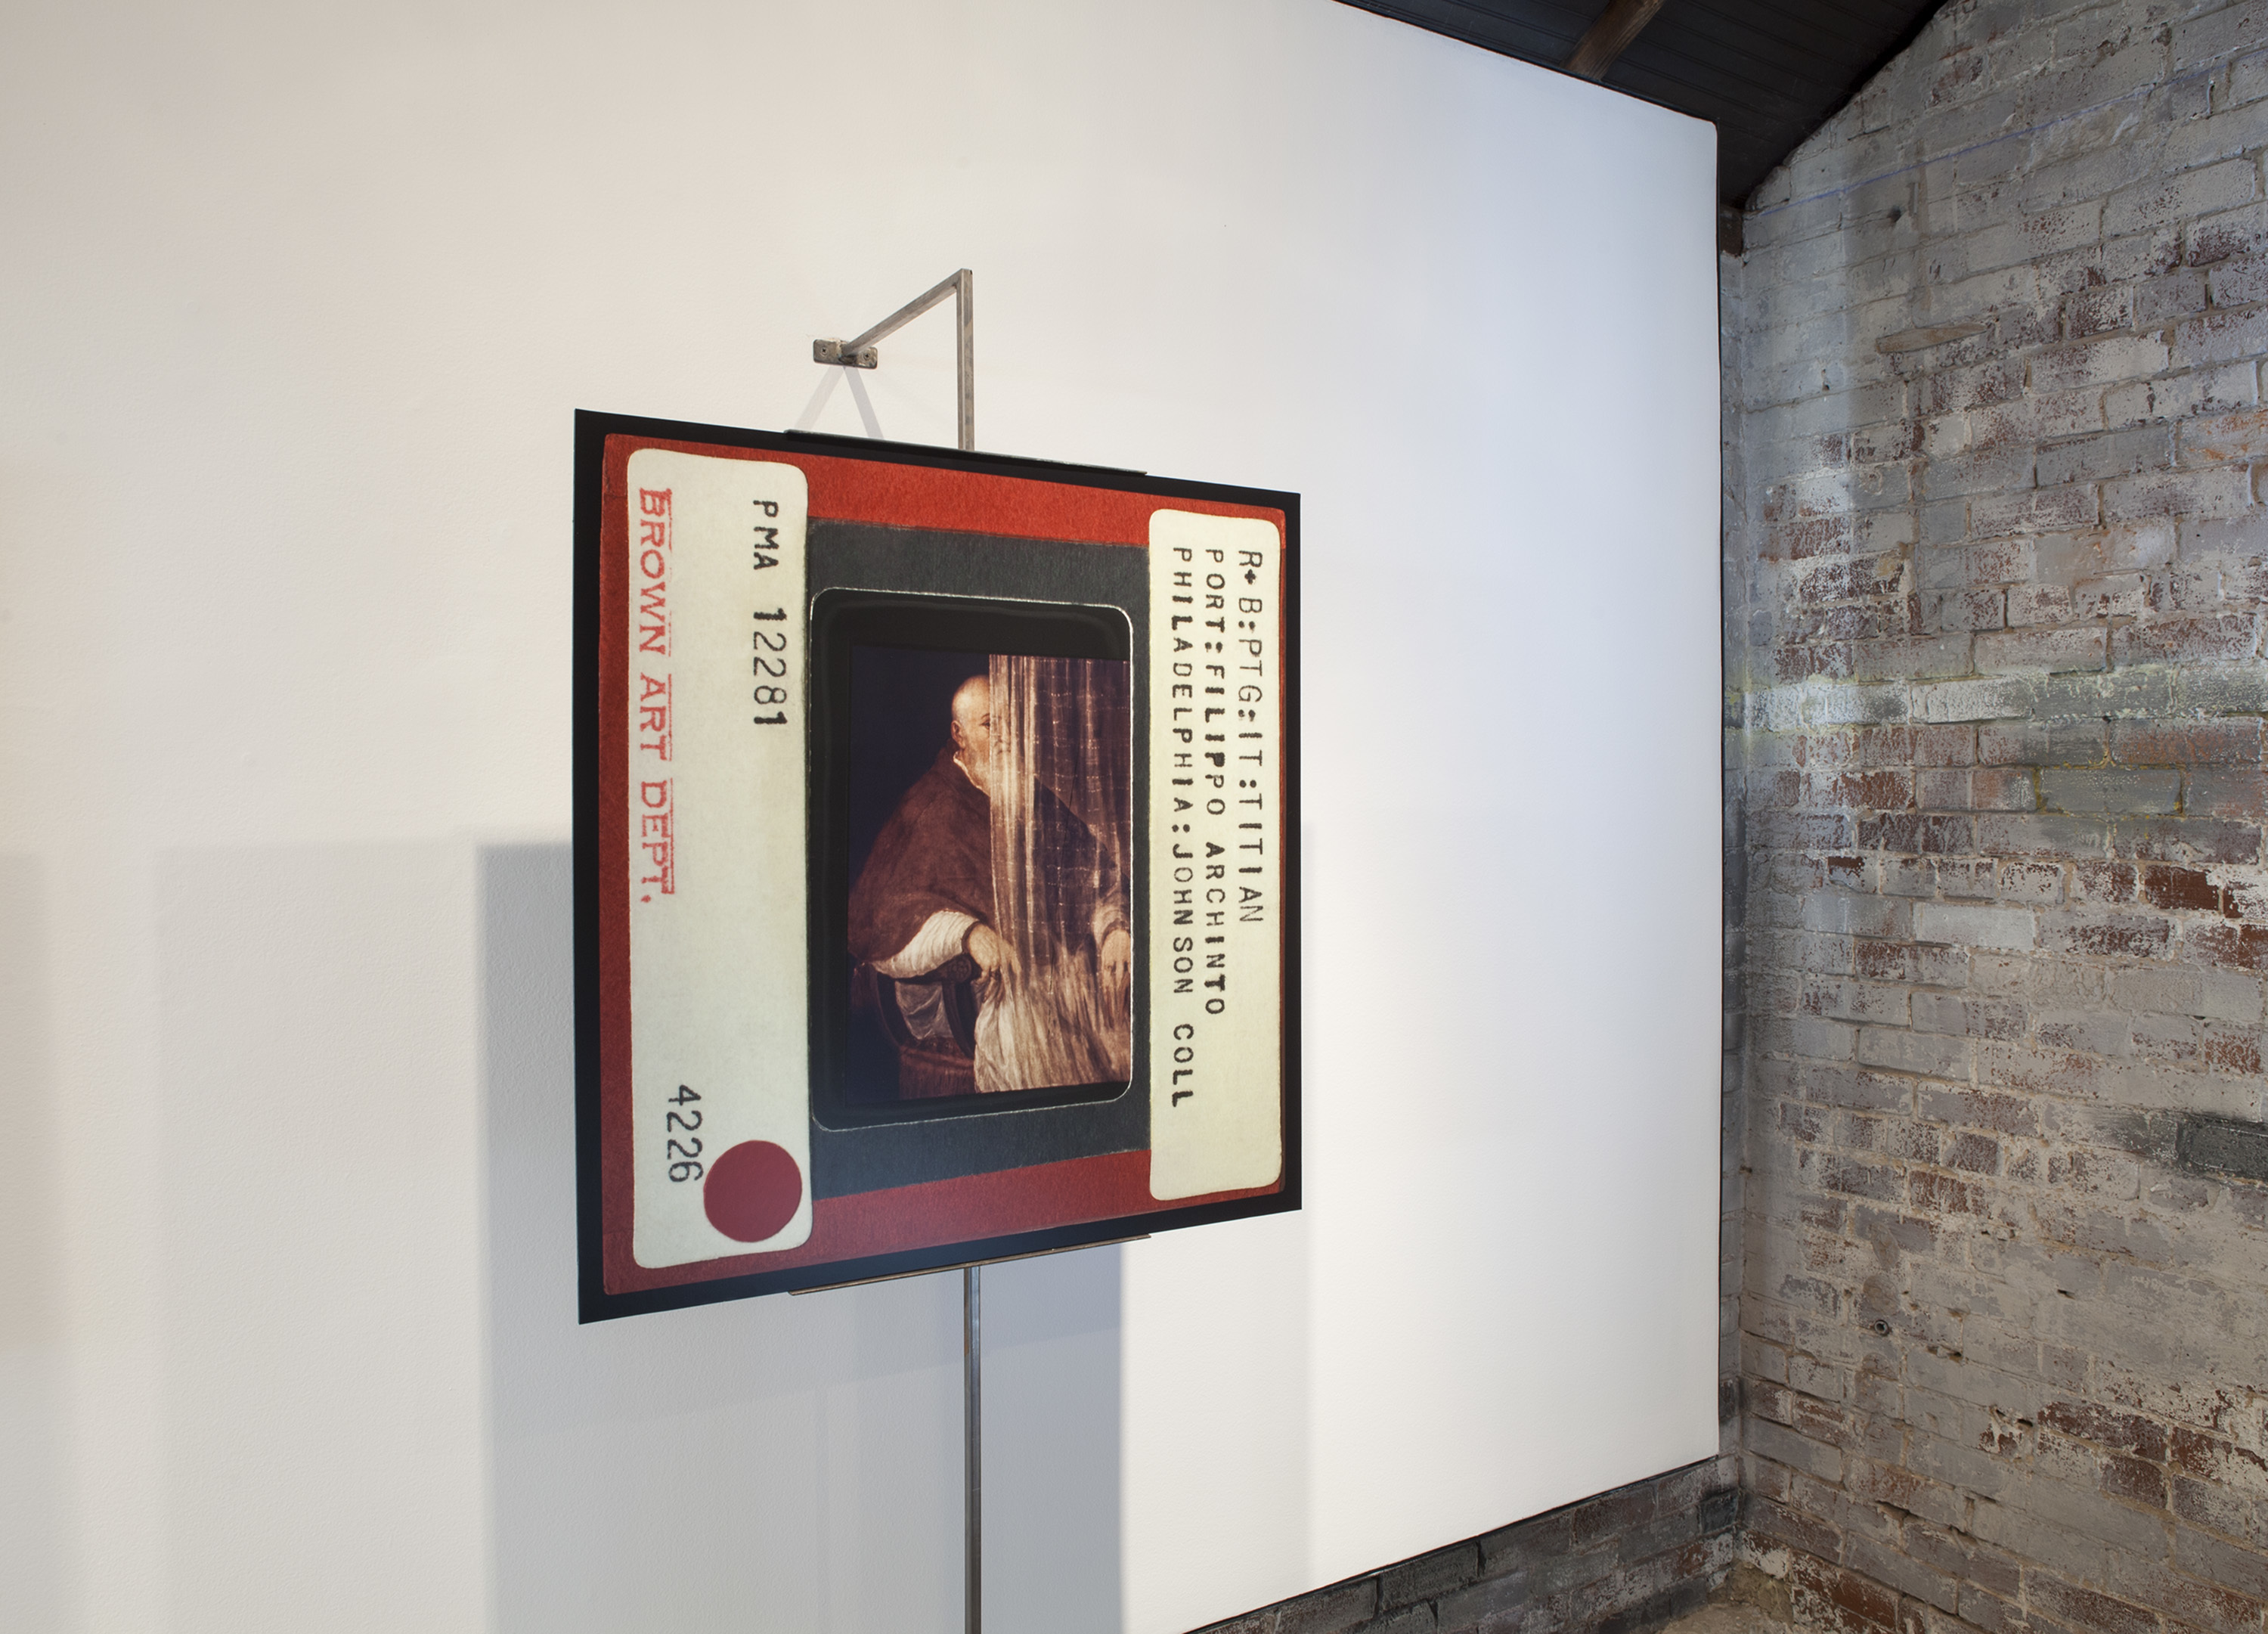 Vesna Pavlović, R+B:PTG:IT:TITIAN, PORT:FILIPPO ARCHINTO, 30 x 30 in., Endura metallic color print with metal stand, 2016